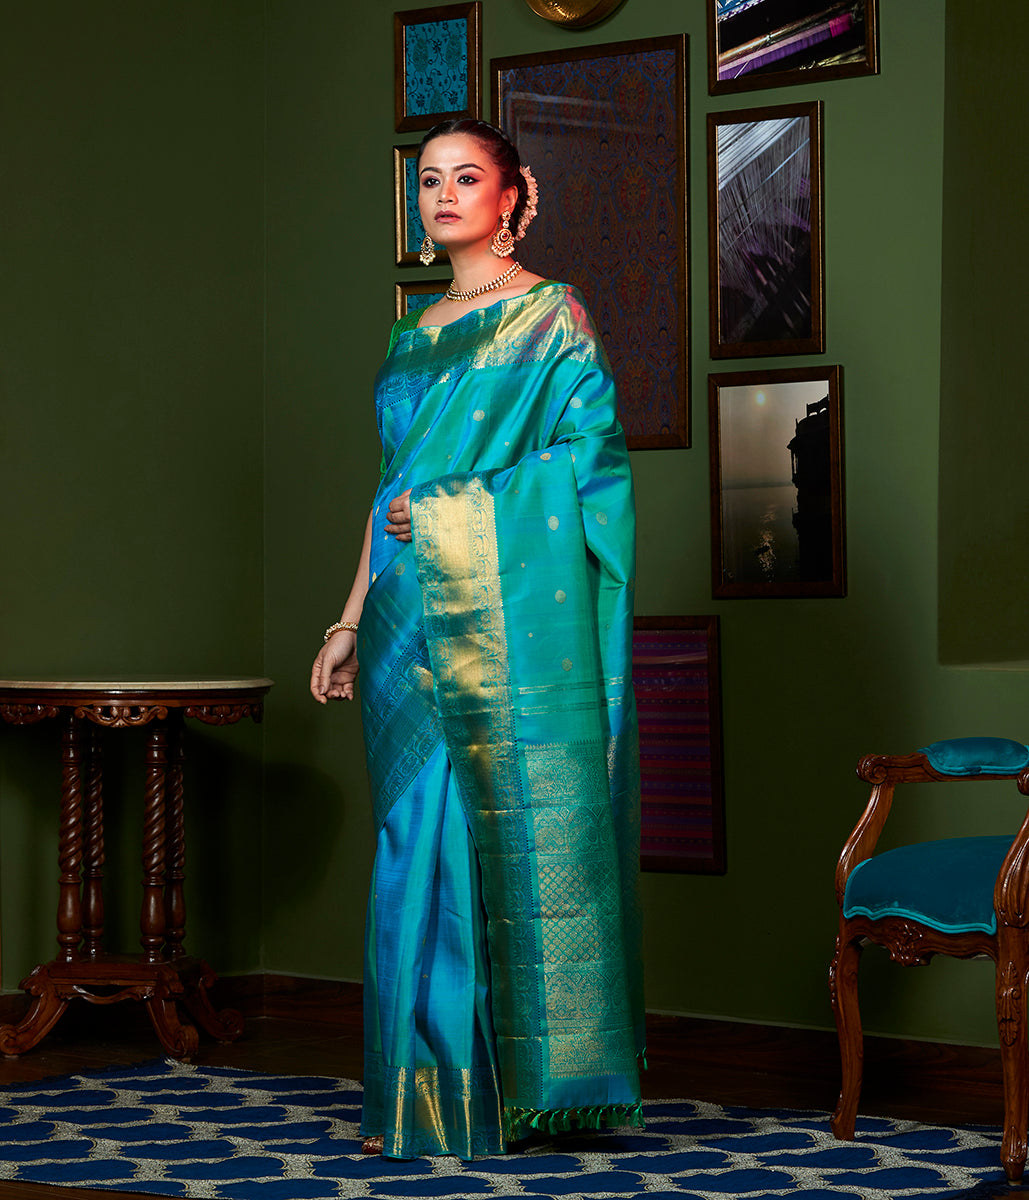 Handwoven Blue and Green Kanjivaram Silk Saree with Pure Zari